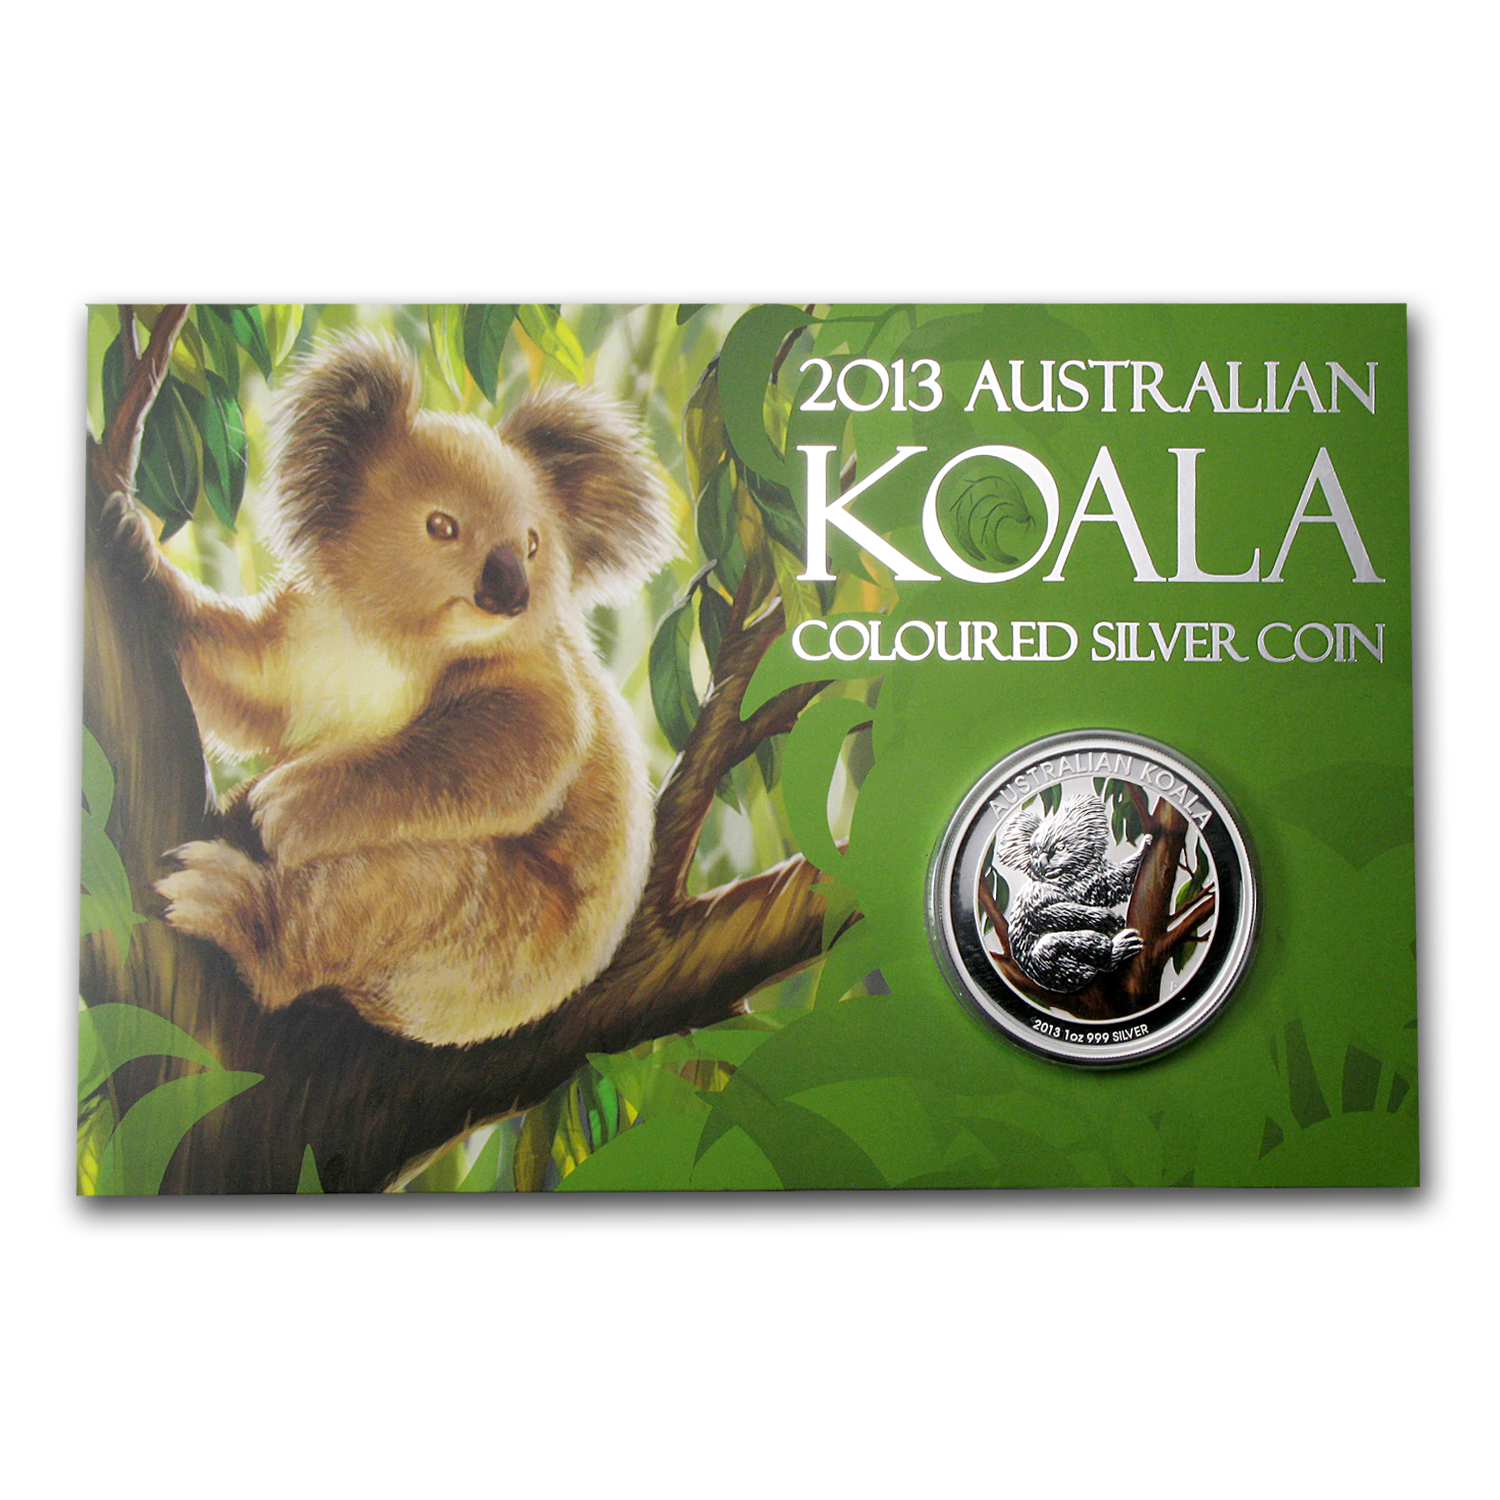 2013 1 oz Silver Colorized Koala Coin (In display card)